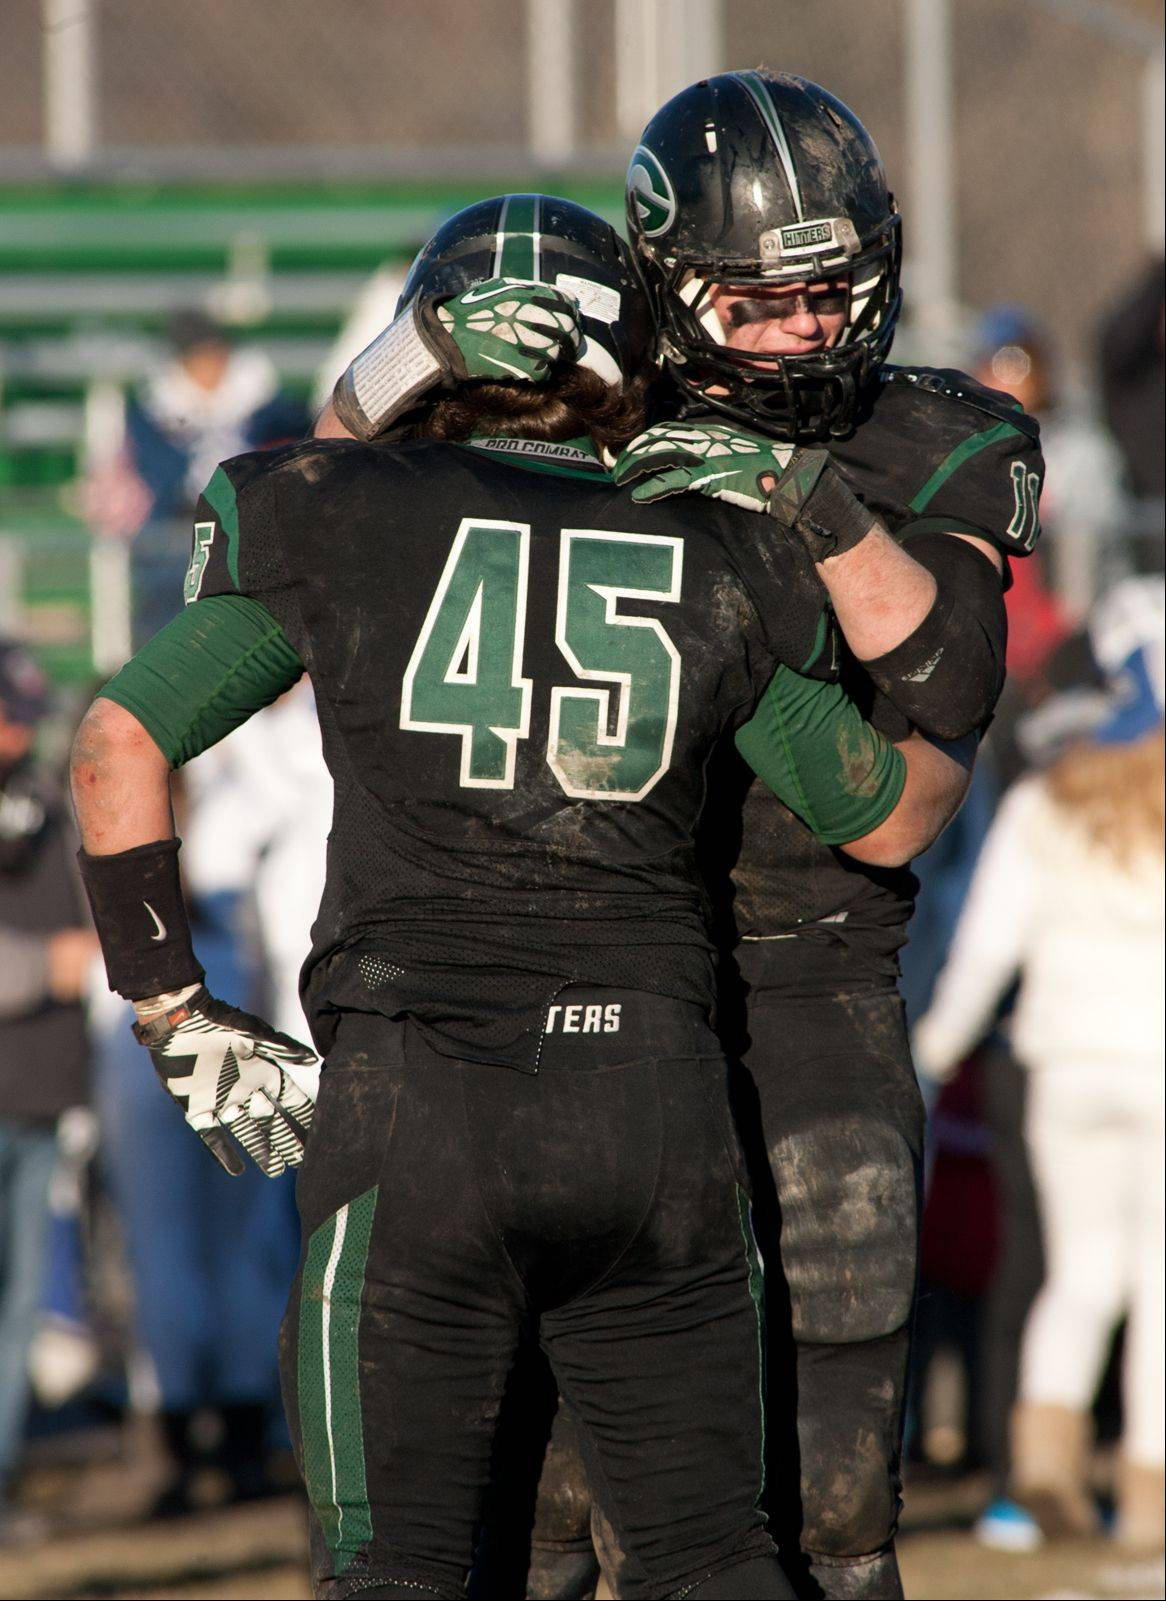 Glenbard West's Jordan Hassan (45) and Grant Greeno meet at midfield following their 16-7 loss to Lake Zurich.